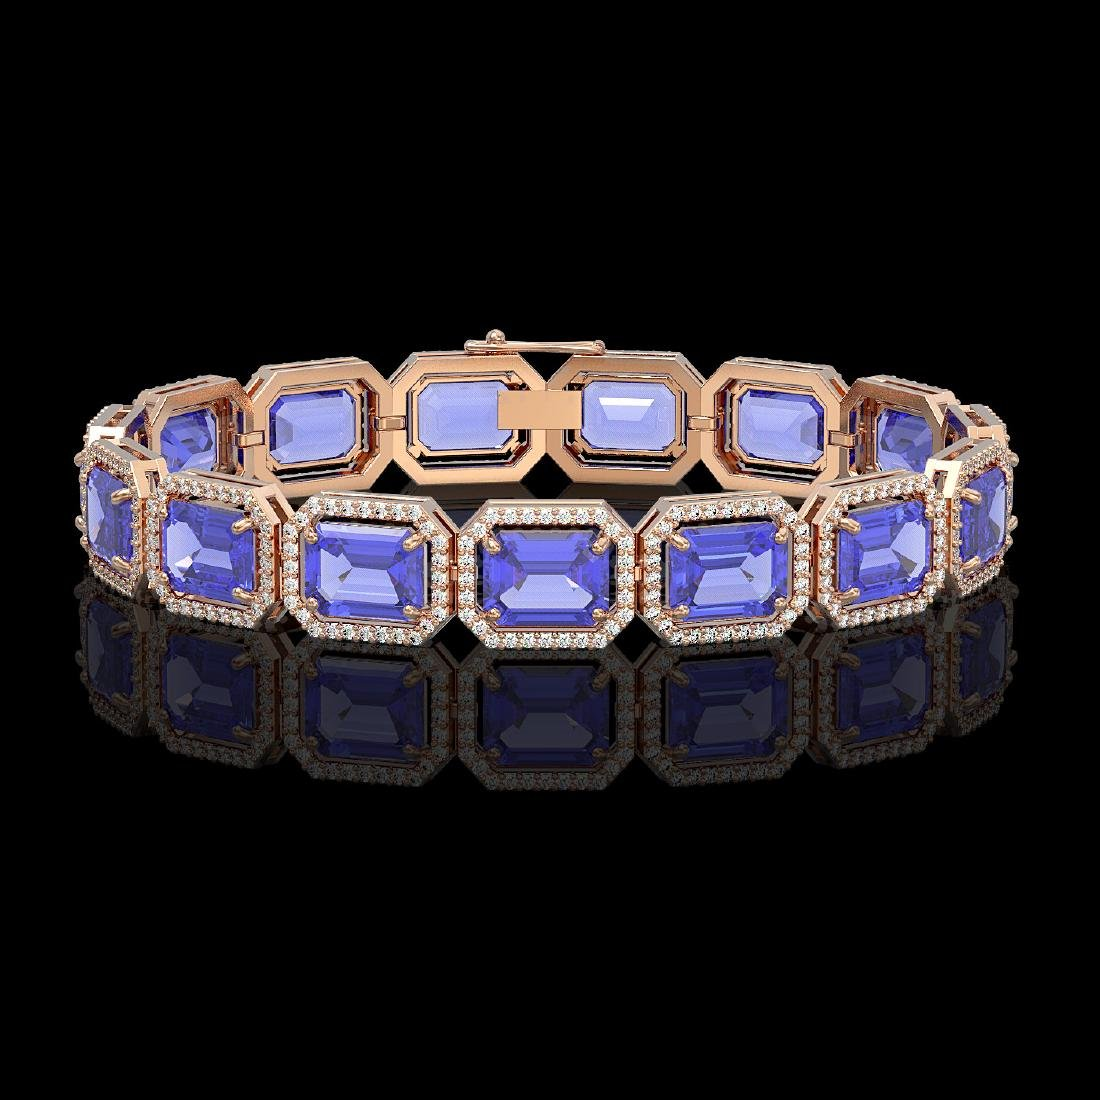 36.37 CTW Tanzanite & Diamond Halo Bracelet 10K Rose